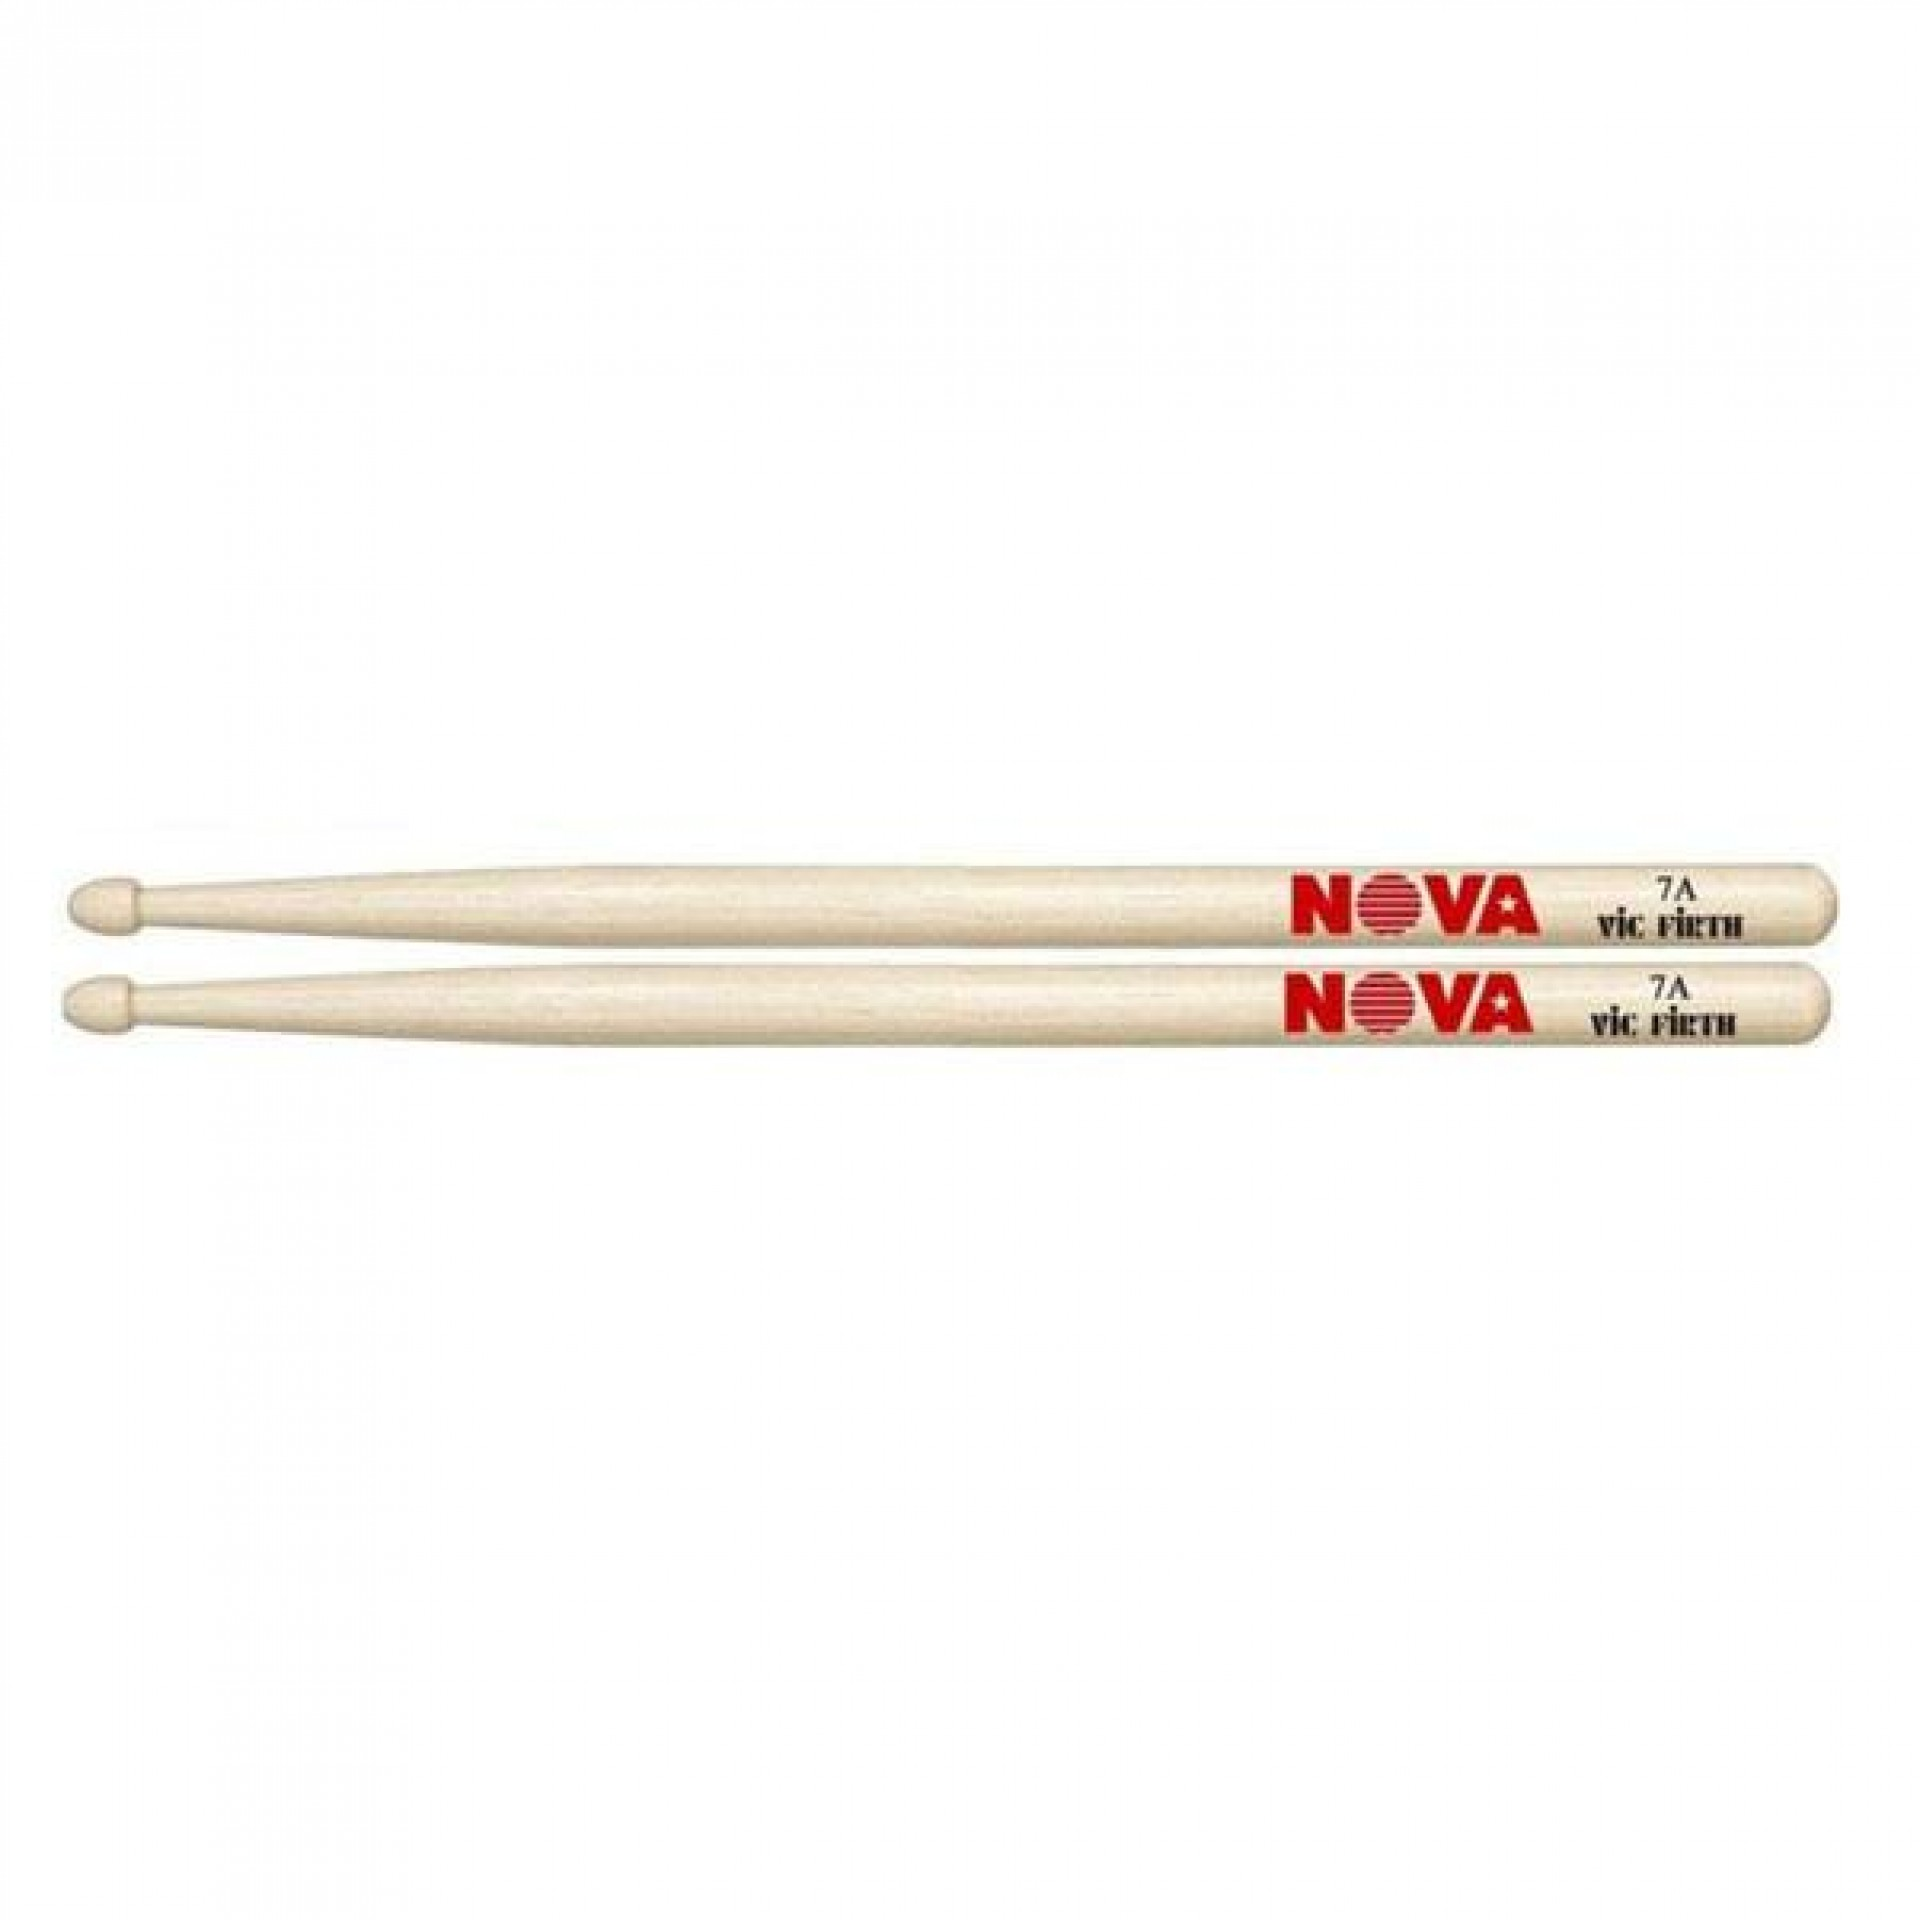 VIC FIRTH PALICE N7A